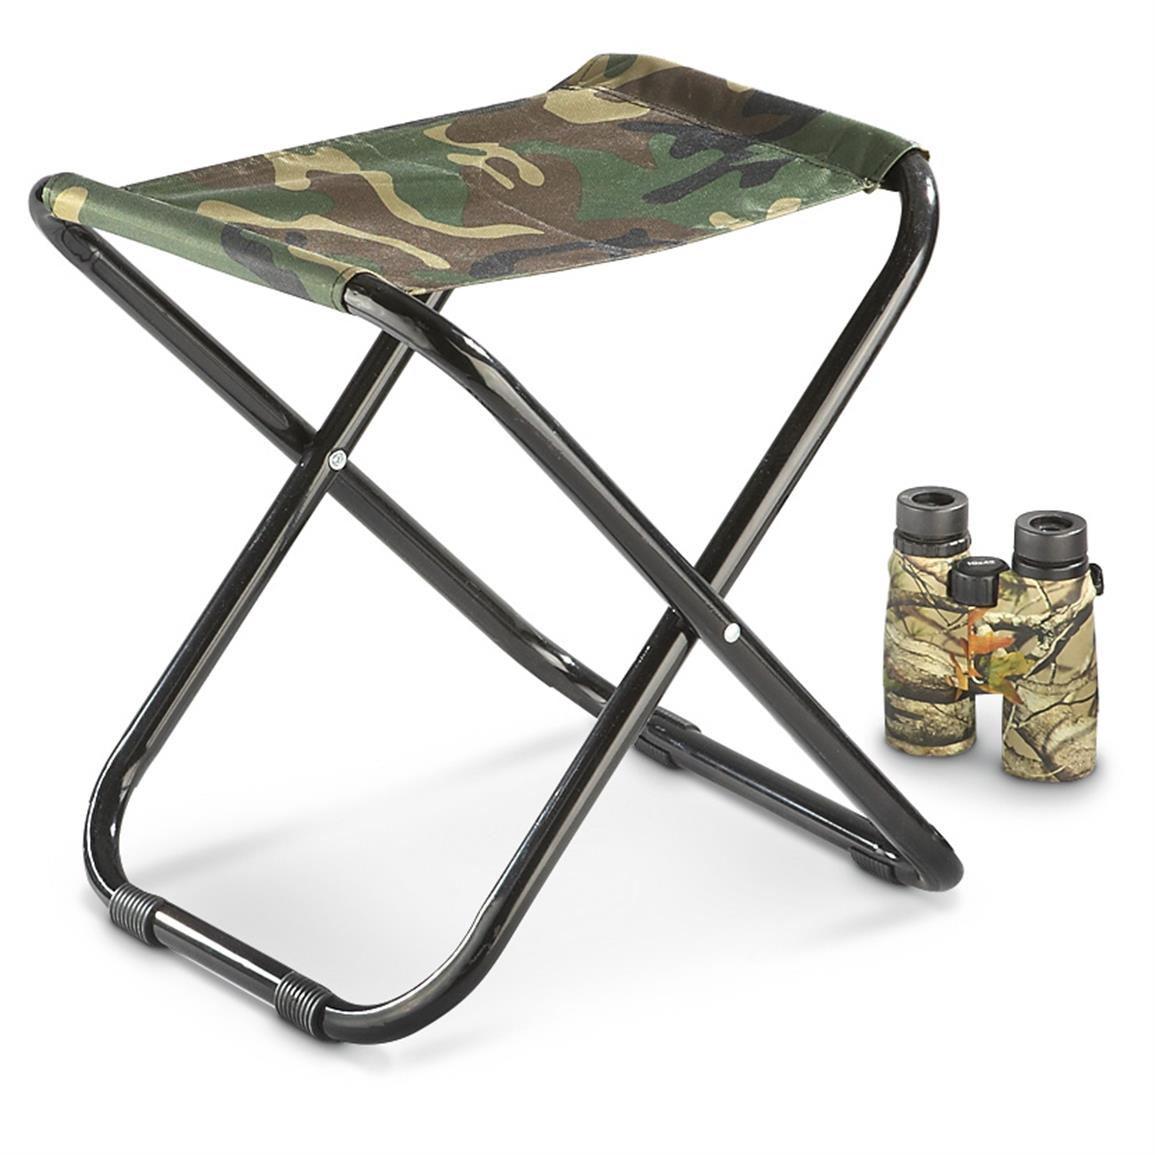 Mil Tec Folding Woodland Camo Camp Stool 625279 Camo